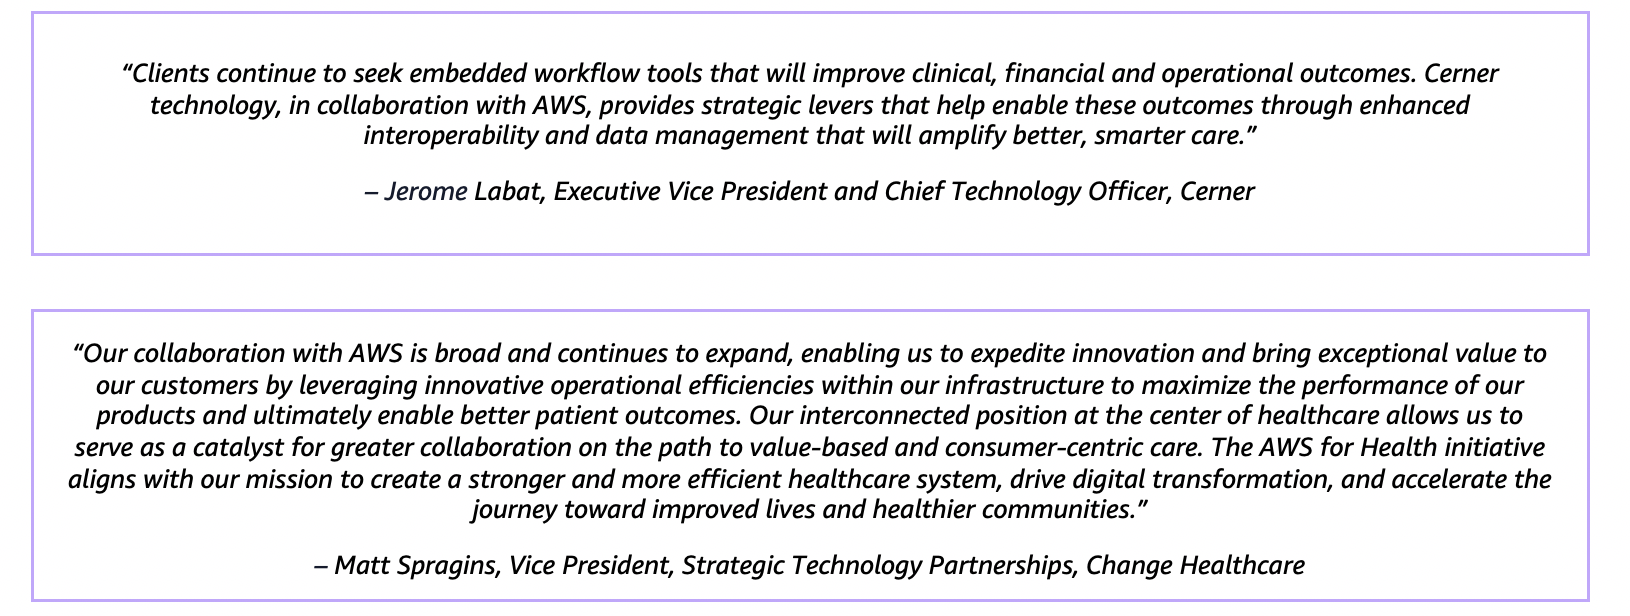 """""""Clients continue to seek embedded workflow tools that will improve clinical, financial and operational outcomes. Cerner technology, in collaboration with AWS, provides strategic levers that help enable these outcomes through enhanced interoperability and data management that will amplify better, smarter care."""" – Jerome Labat, Executive Vice President and Chief Technology Officer, Cerner"""